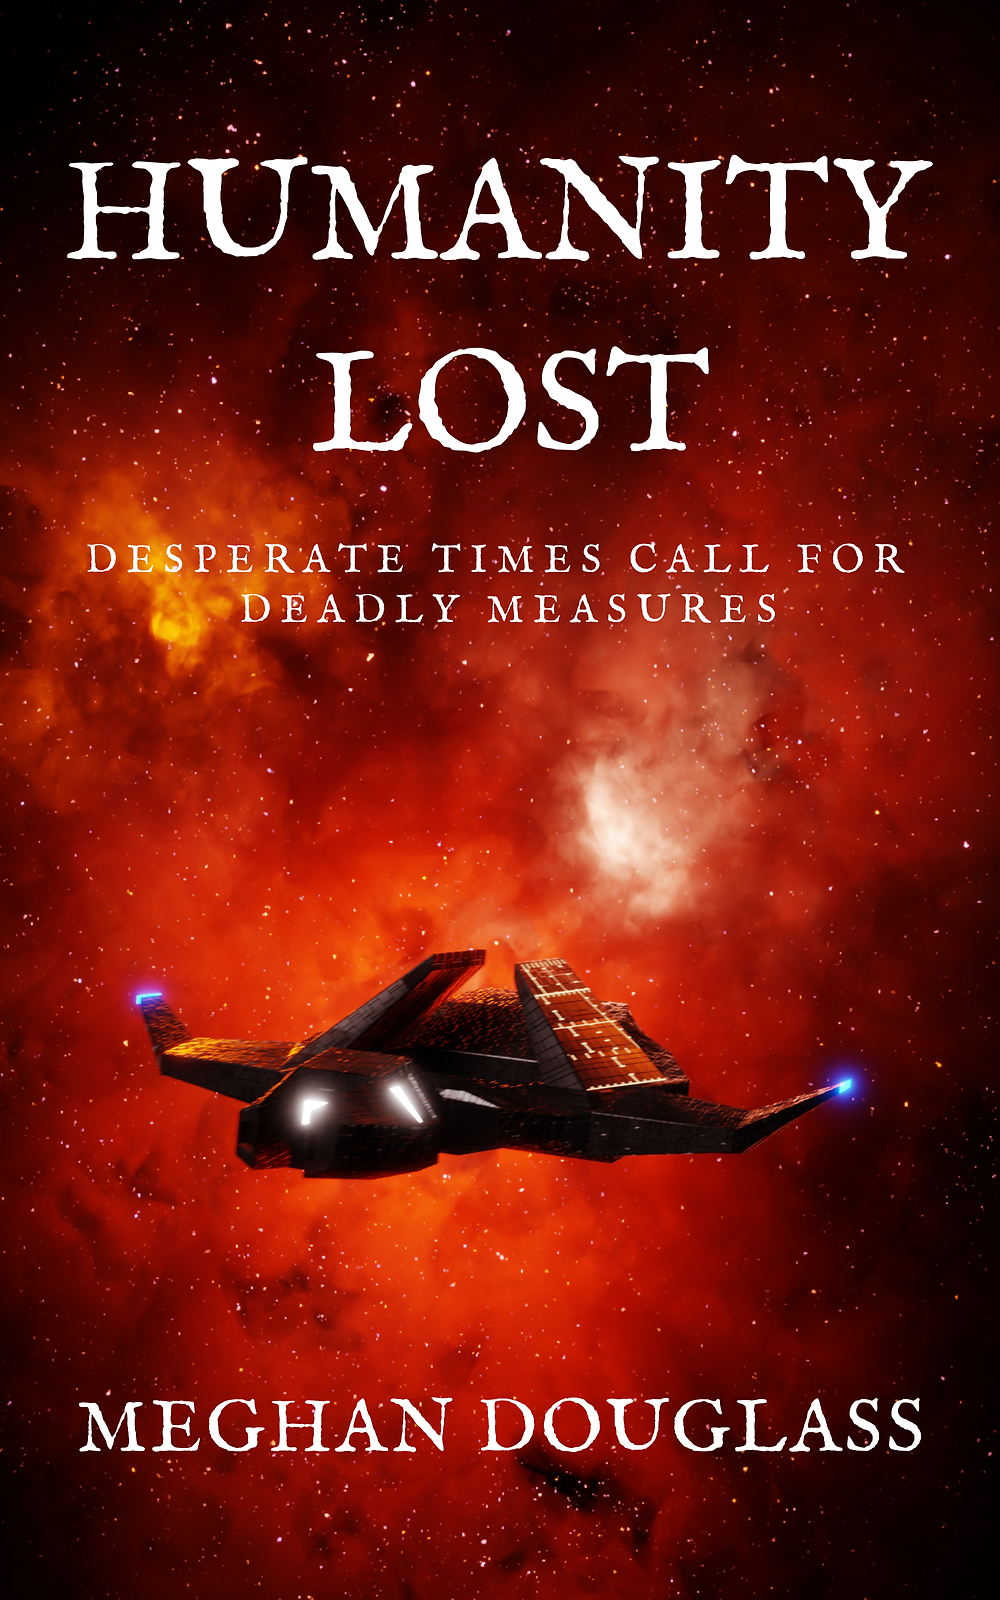 Humanity Lost by Meghan Douglass